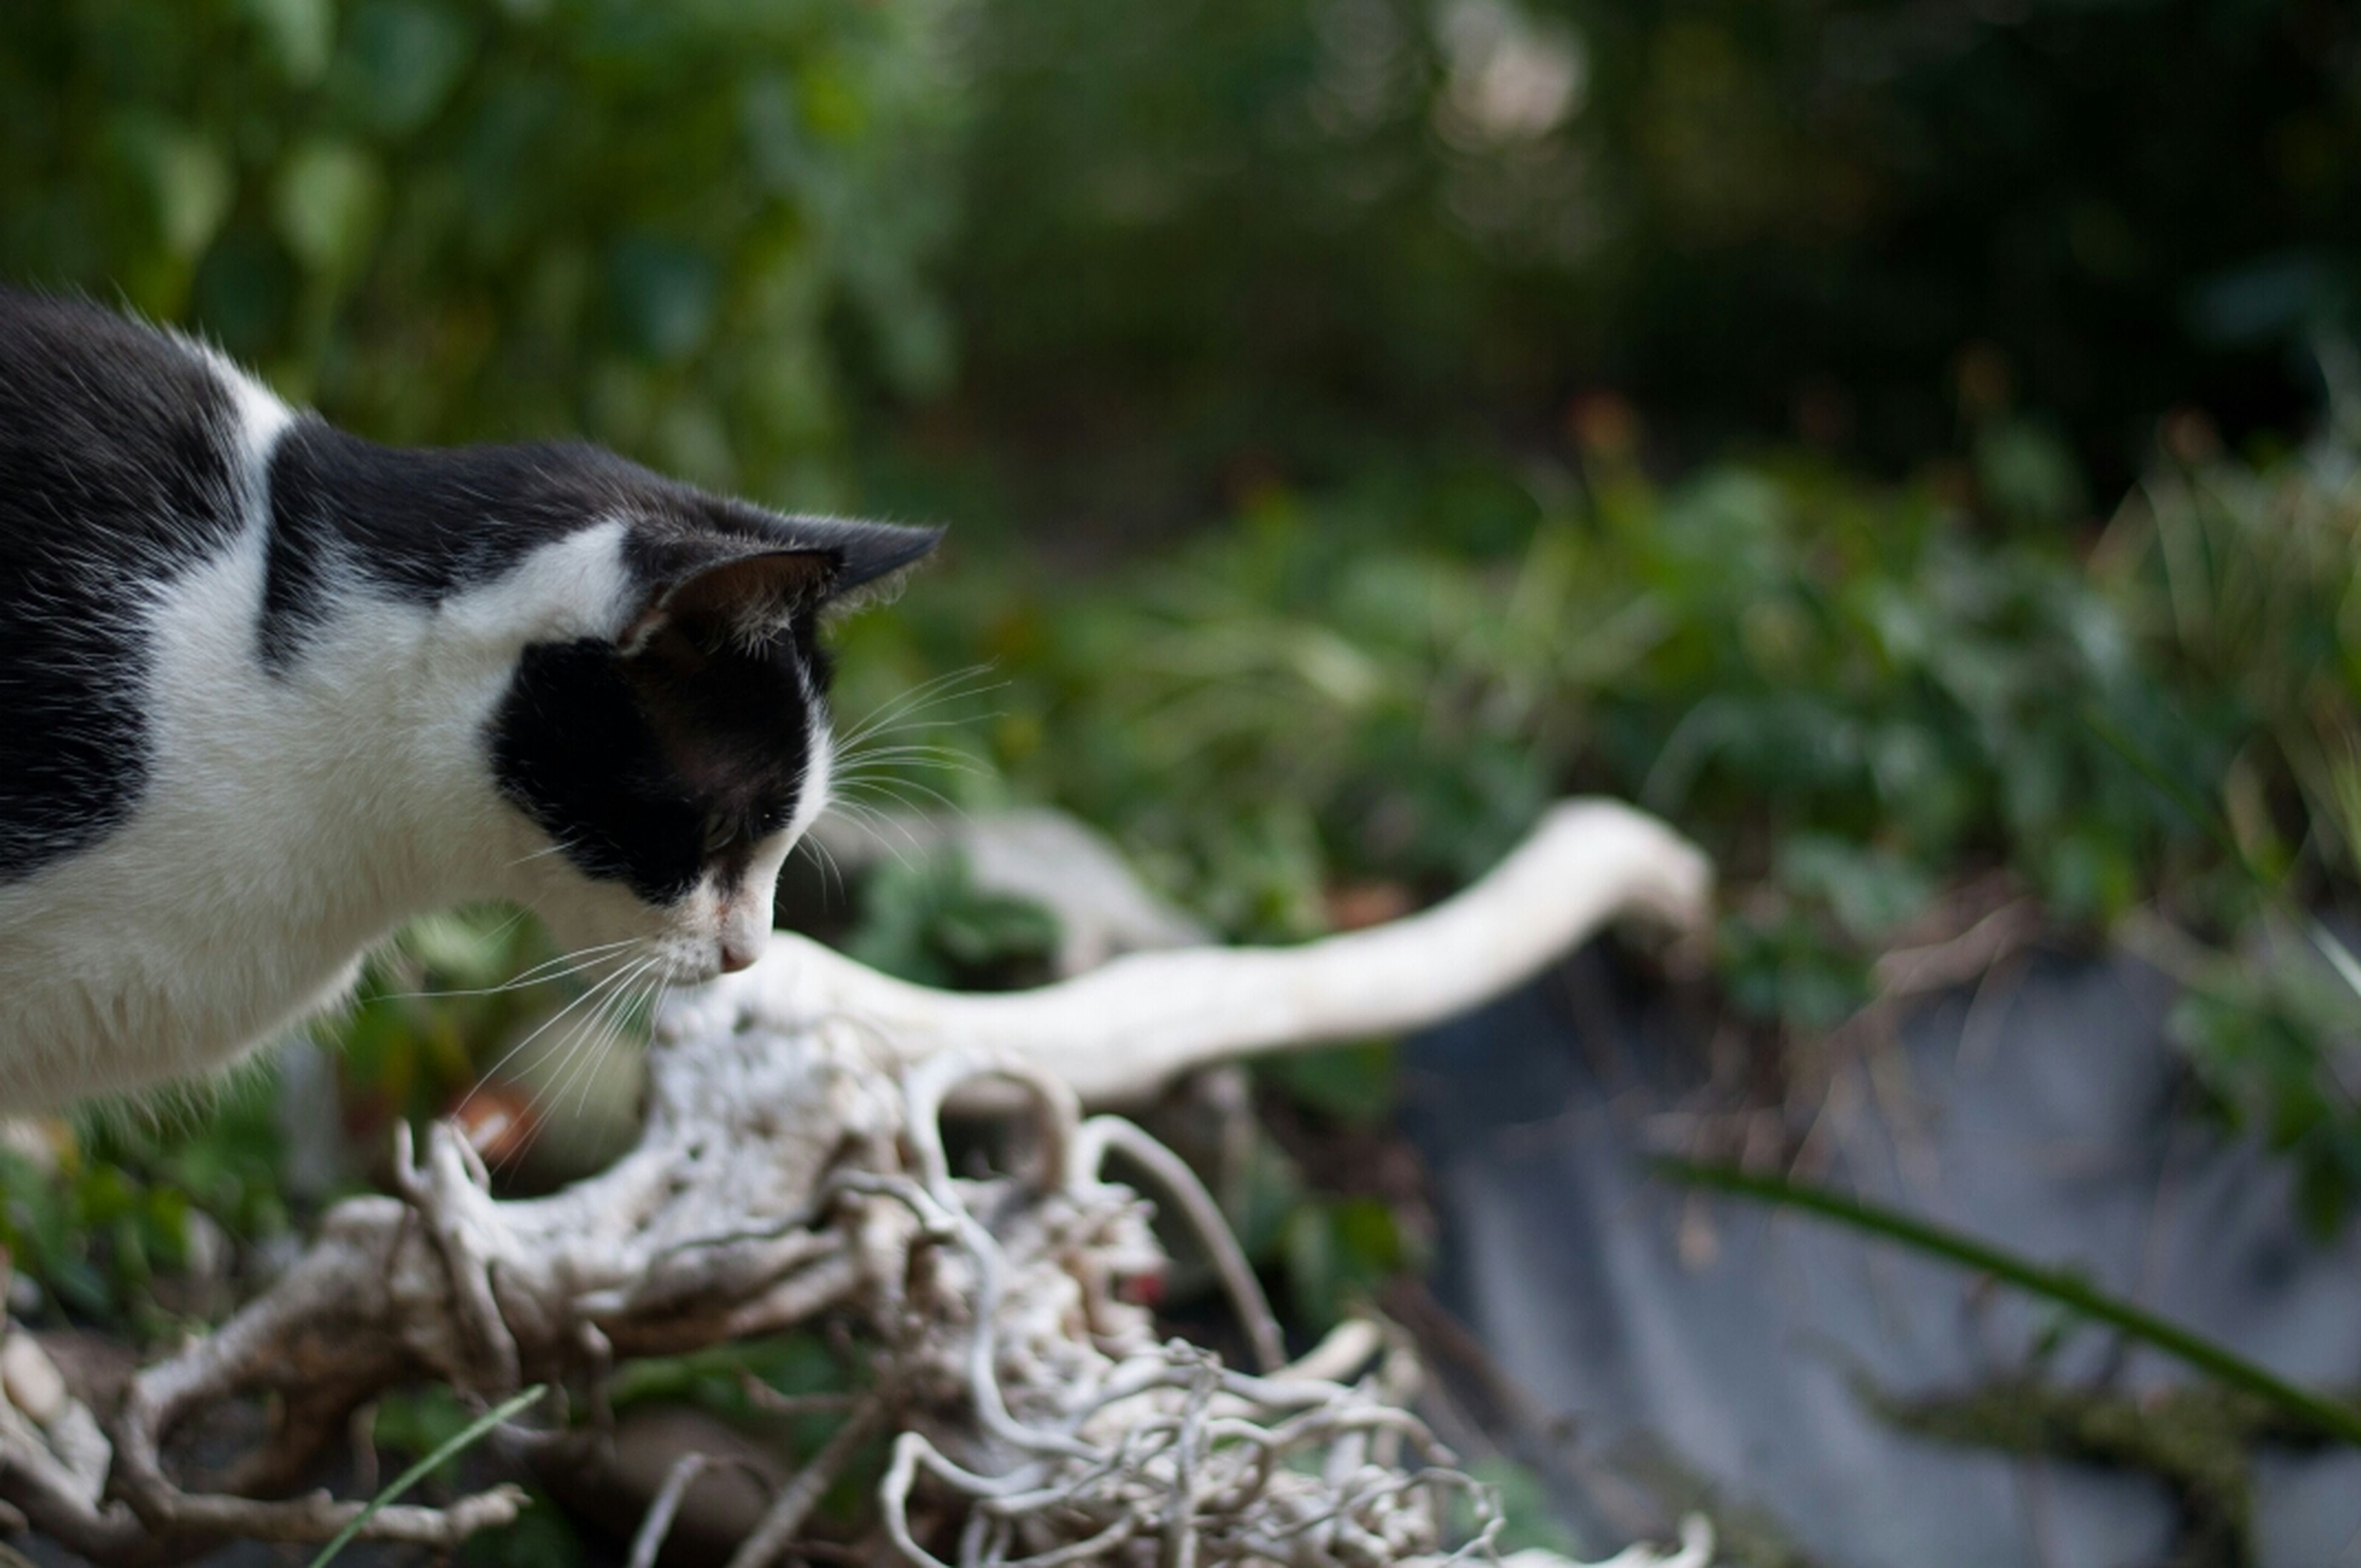 animal themes, one animal, mammal, domestic cat, pets, cat, domestic animals, focus on foreground, selective focus, feline, plant, nature, animals in the wild, wildlife, green color, close-up, day, whisker, outdoors, grass